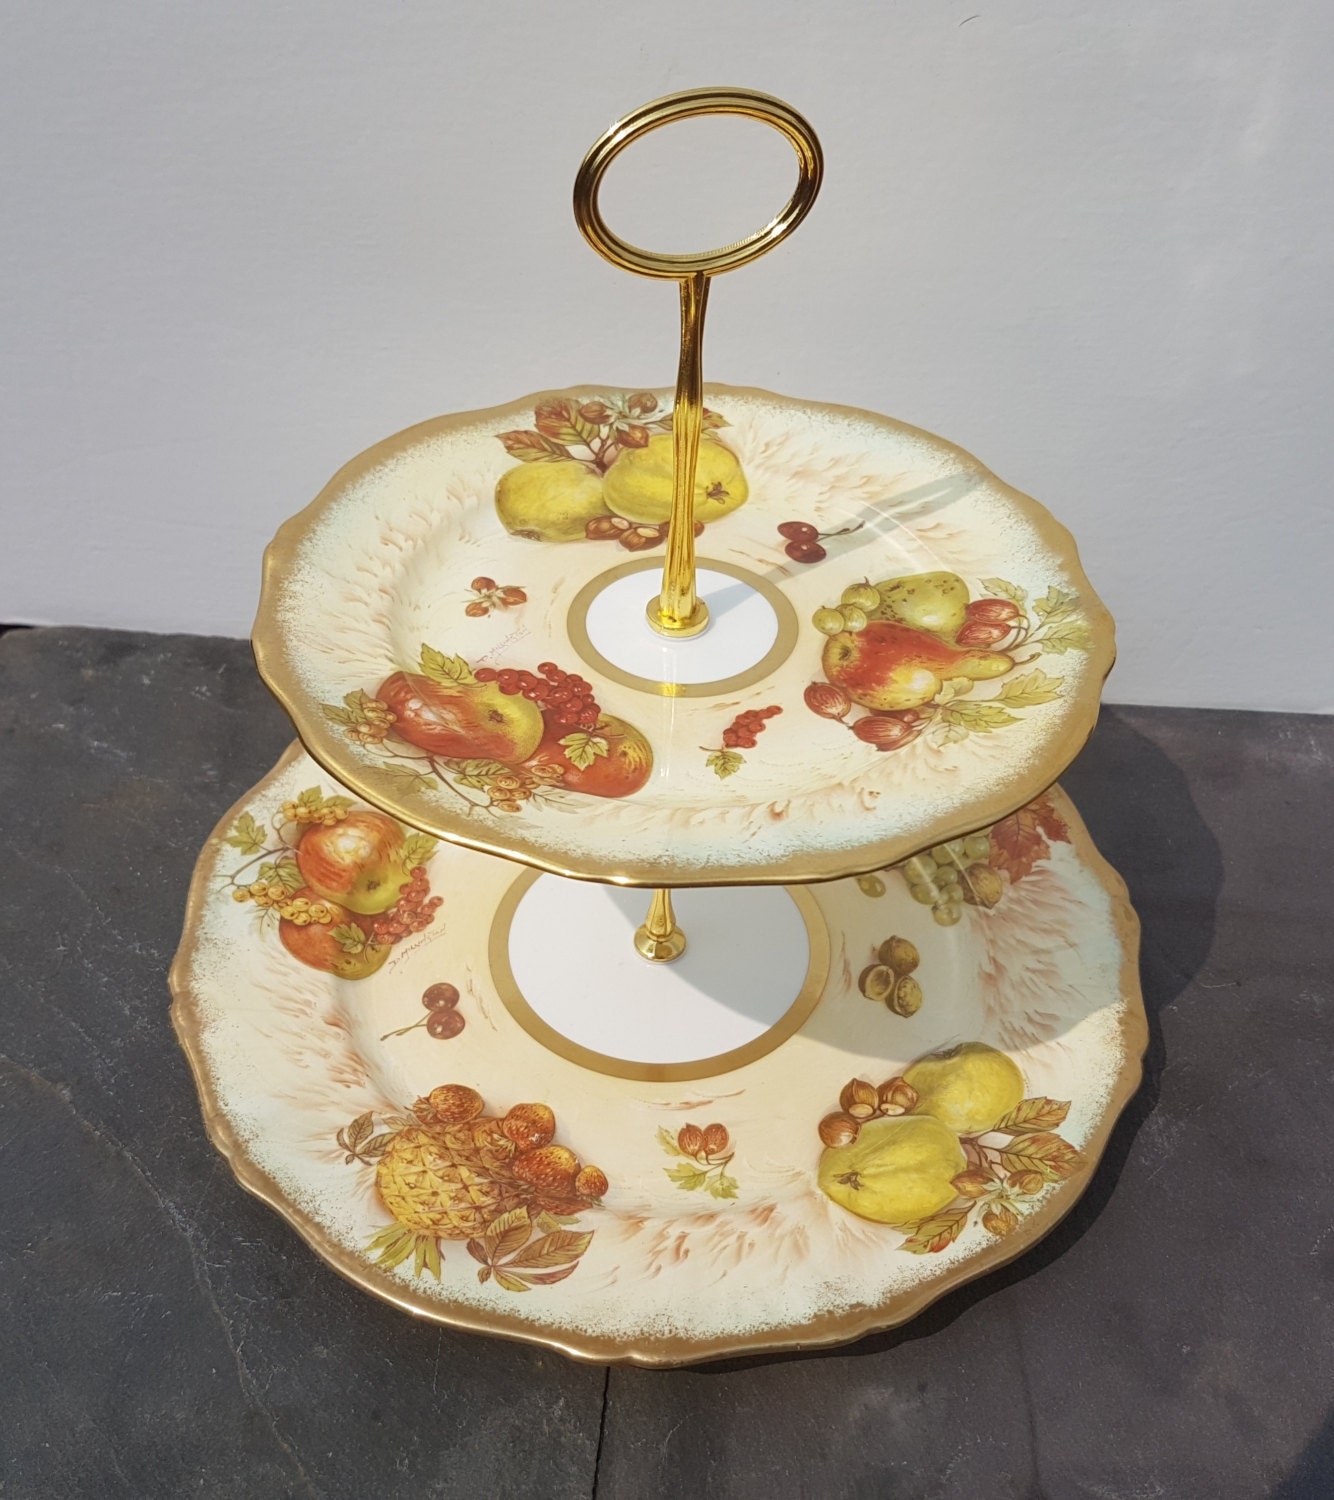 Two Tier Cake Stand Made Using Hammersley Autumn Gold Bone